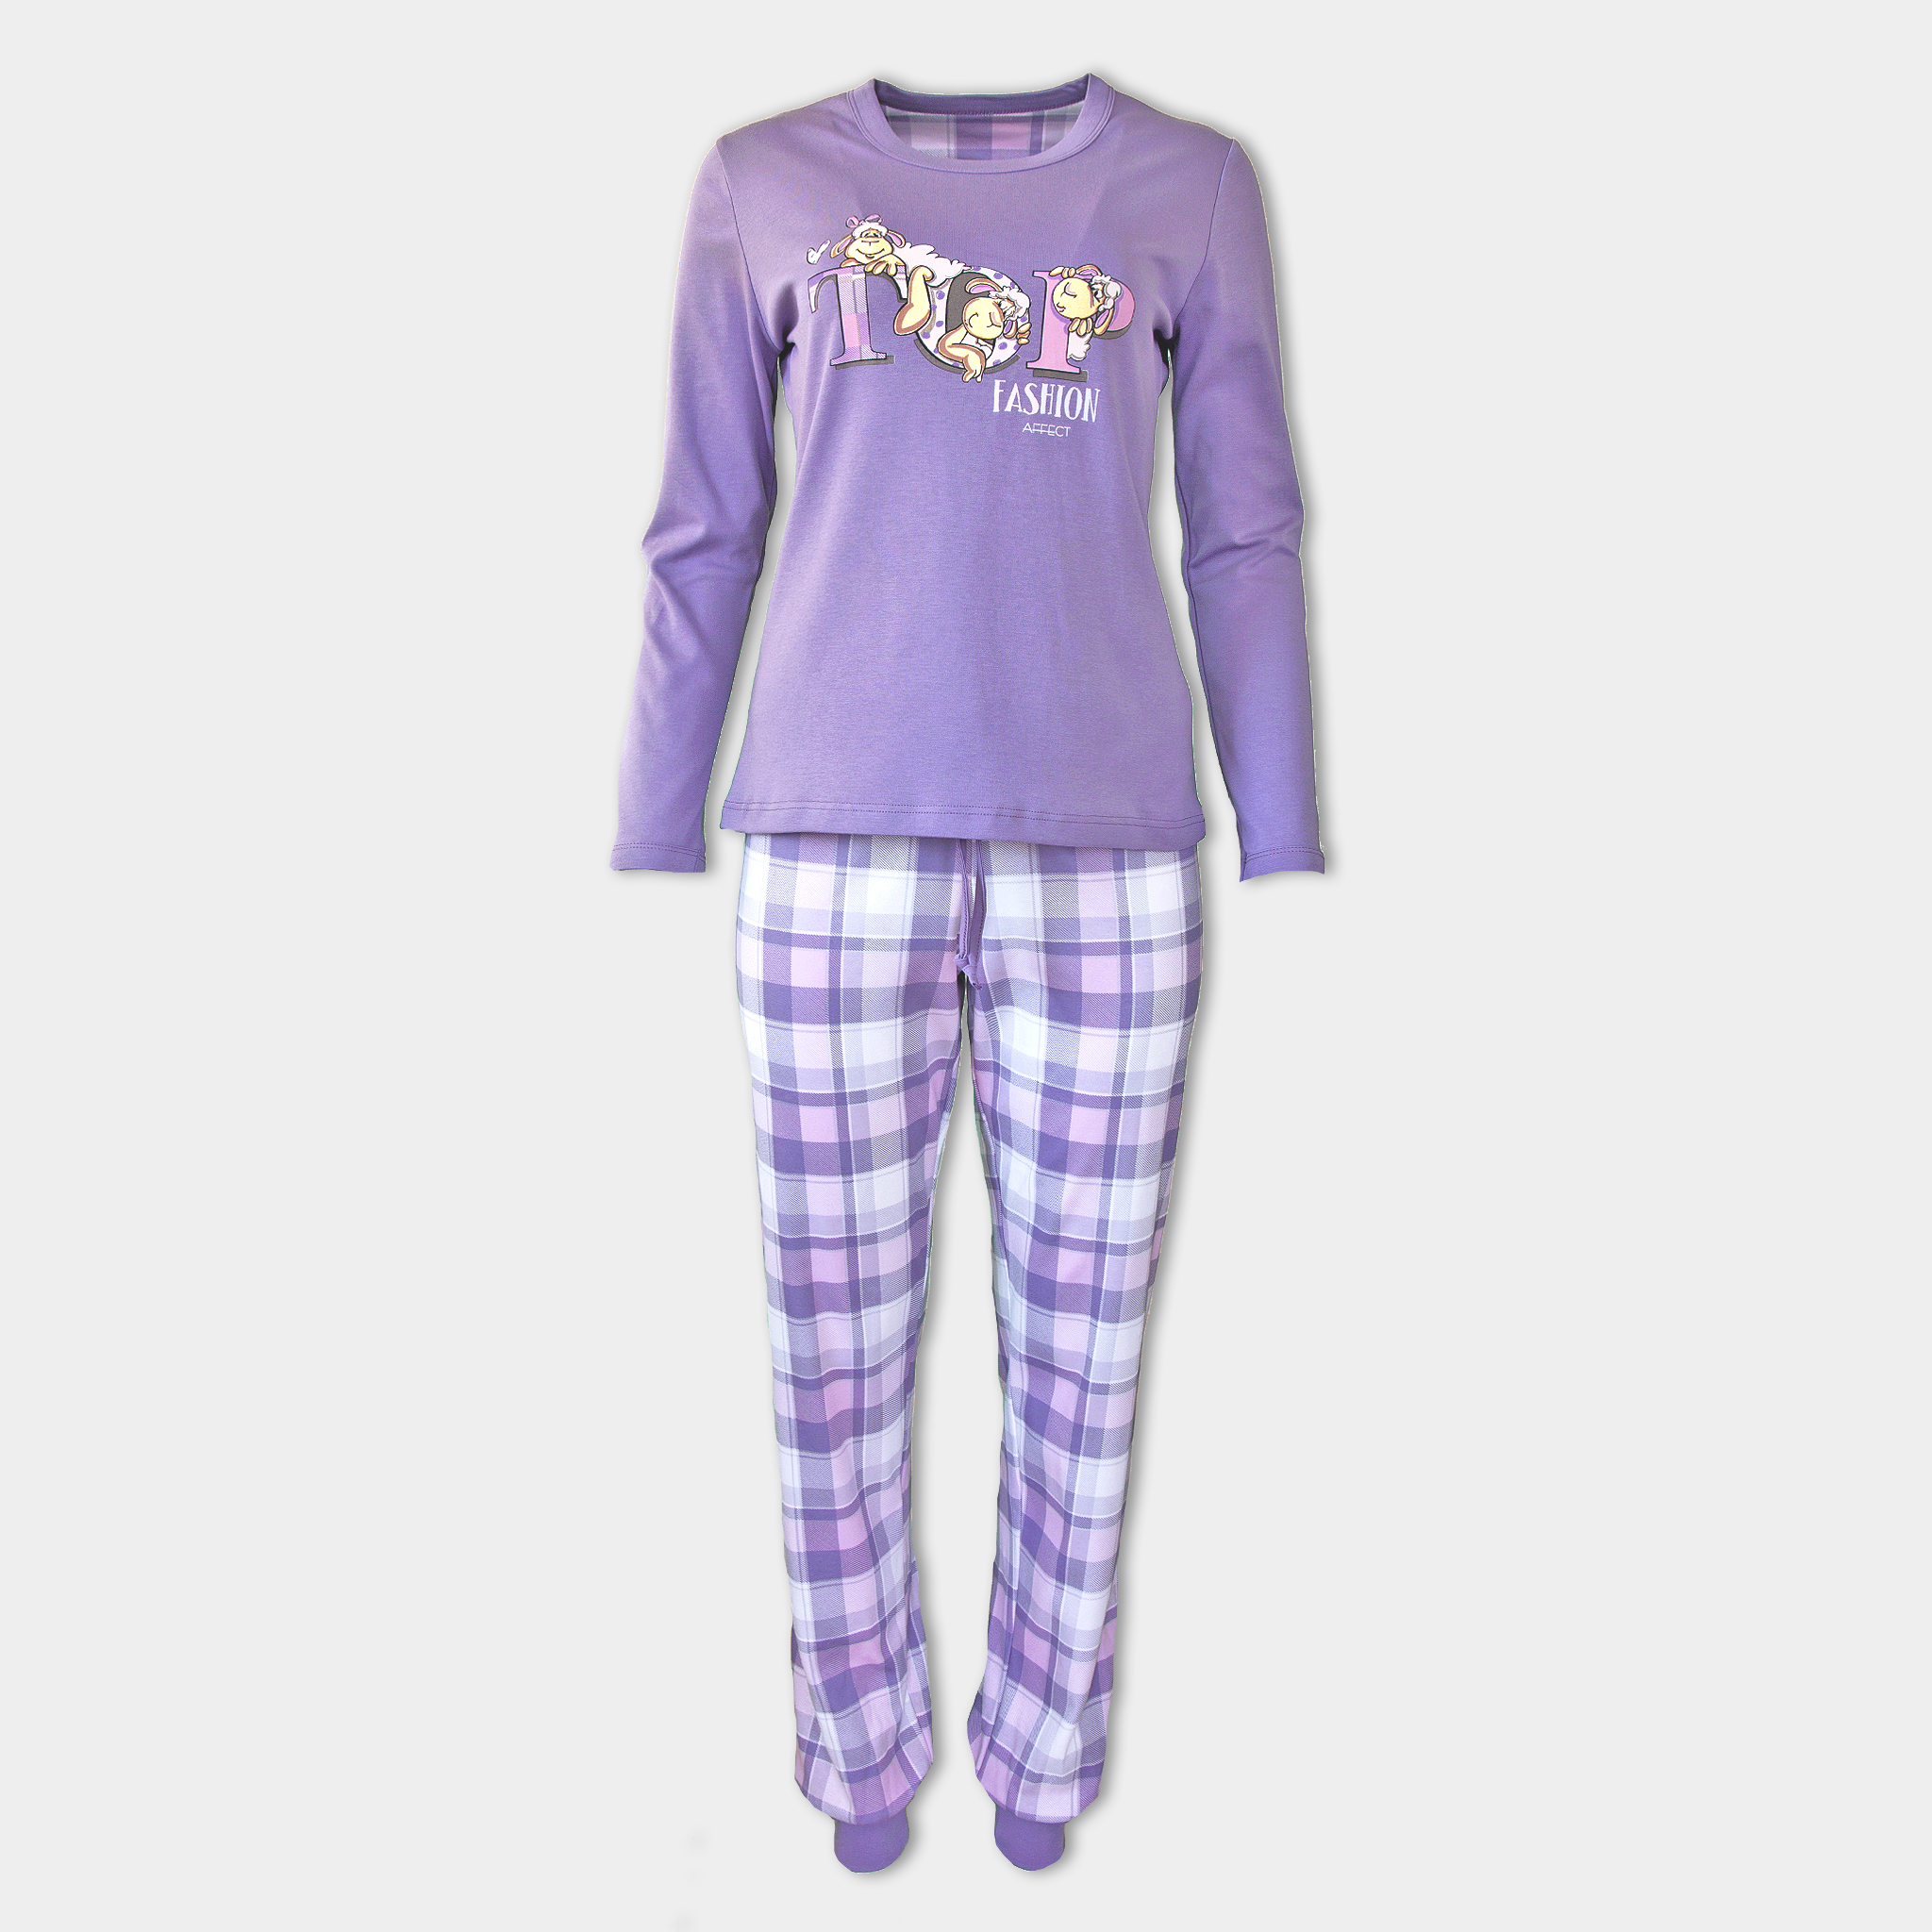 Beautiful PJs with sheep